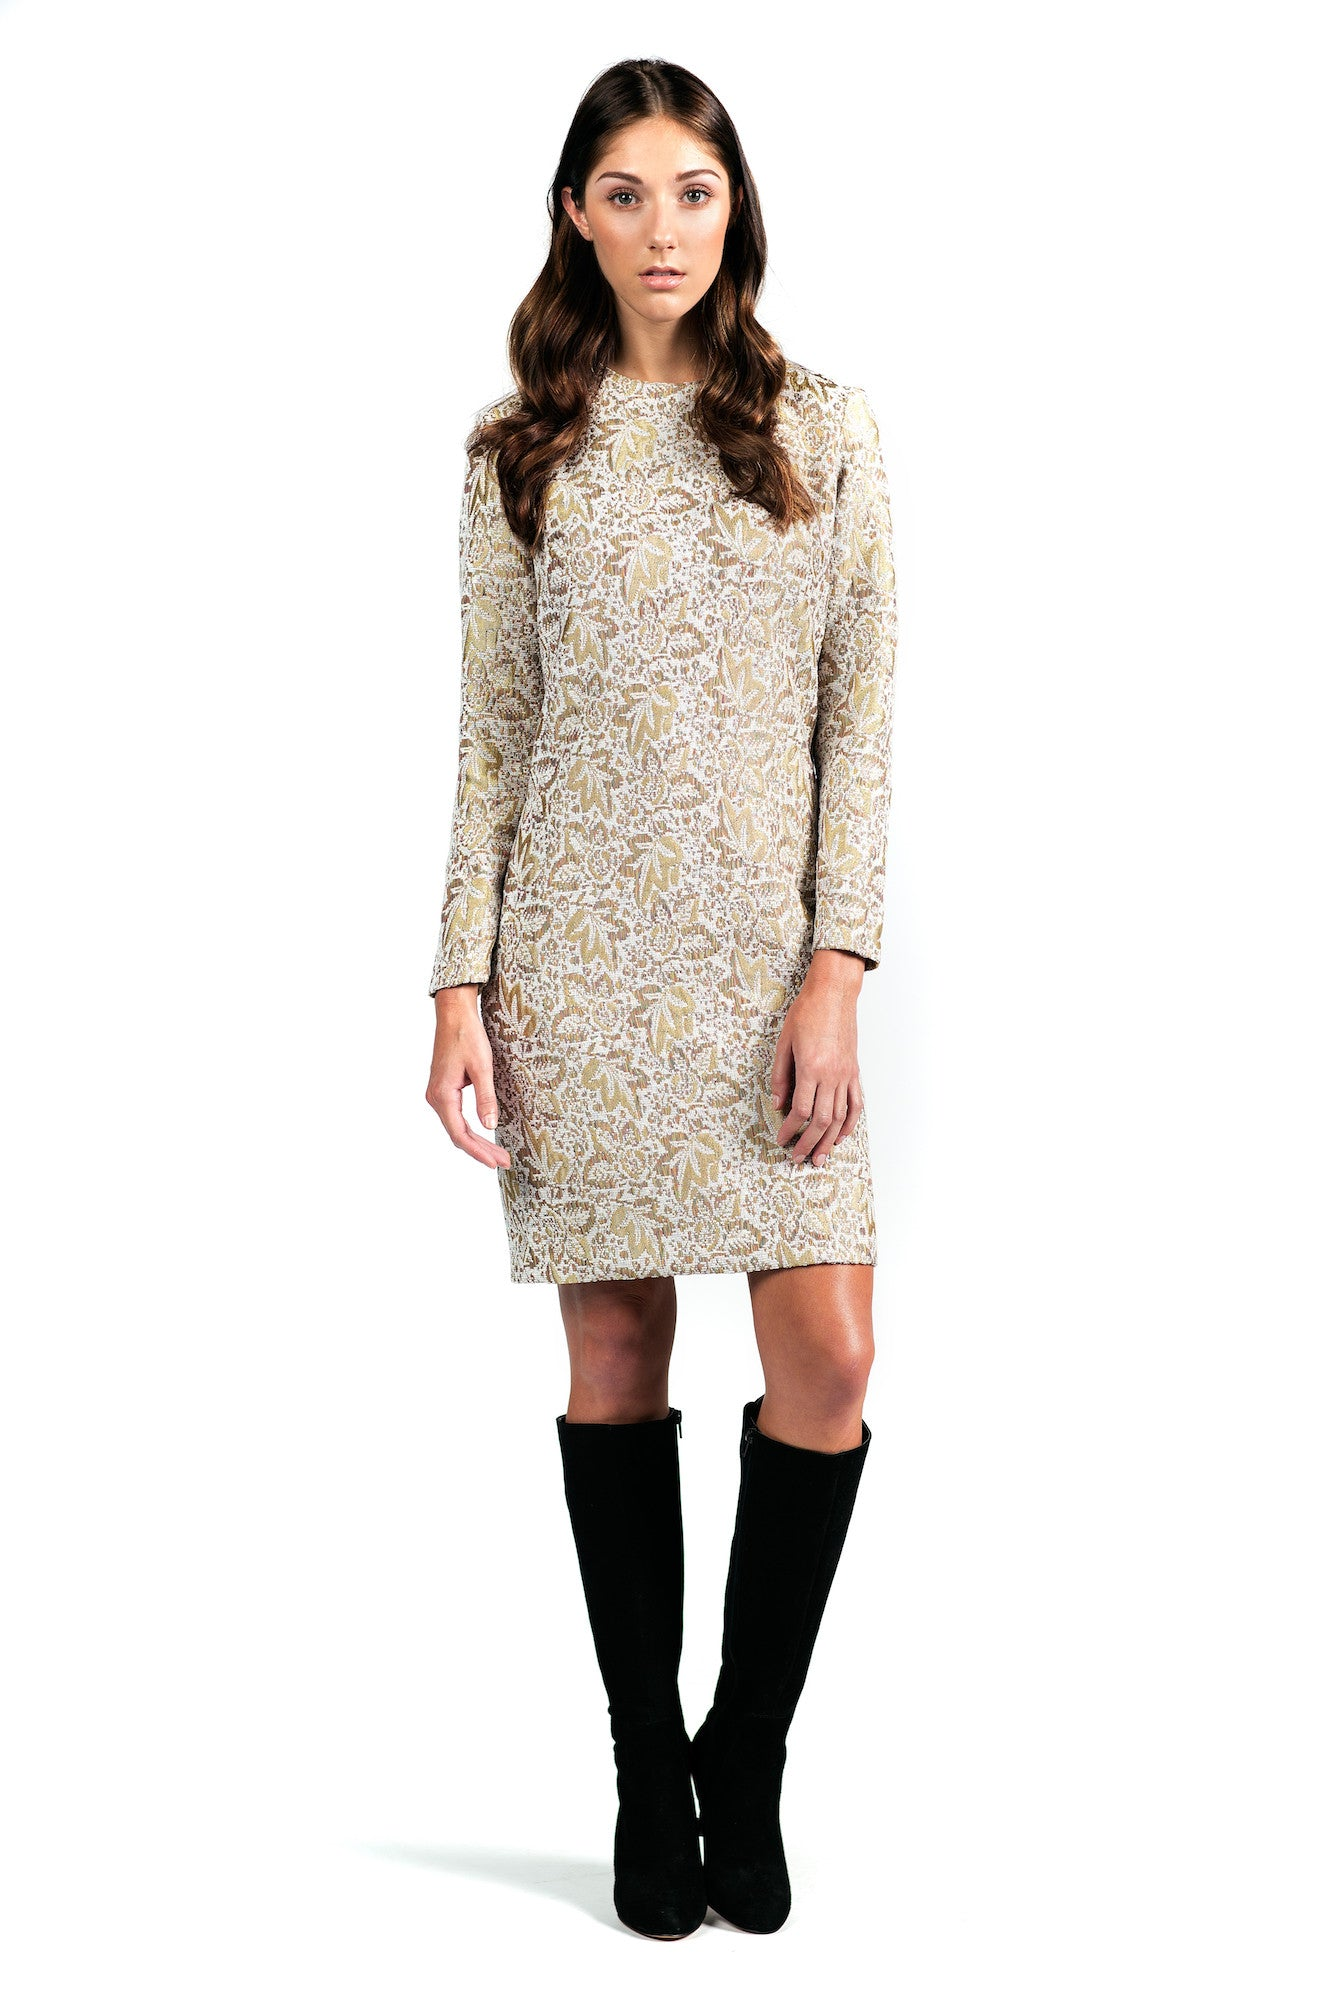 Versatile Long-Sleeve Shift Dress for All Seasons - Steve Guthrie